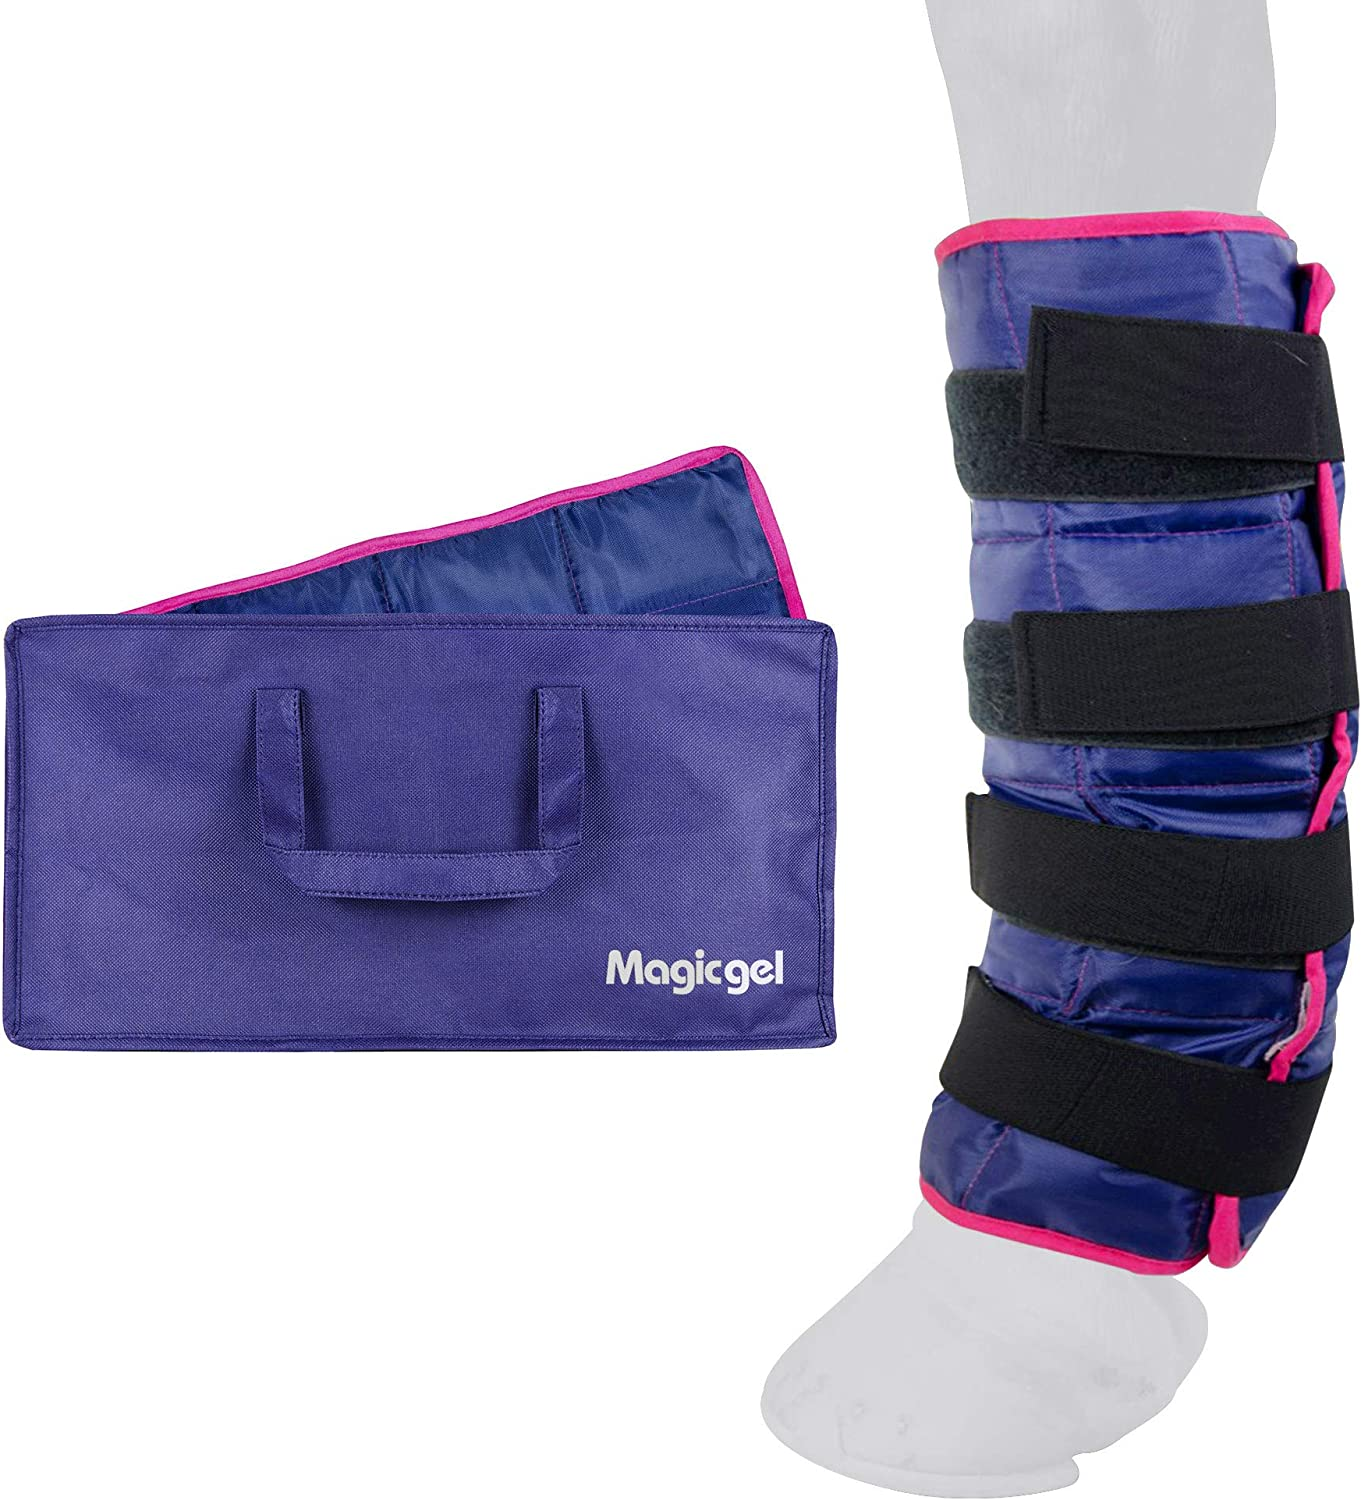 Ice Boots for Horses - Magic Gel